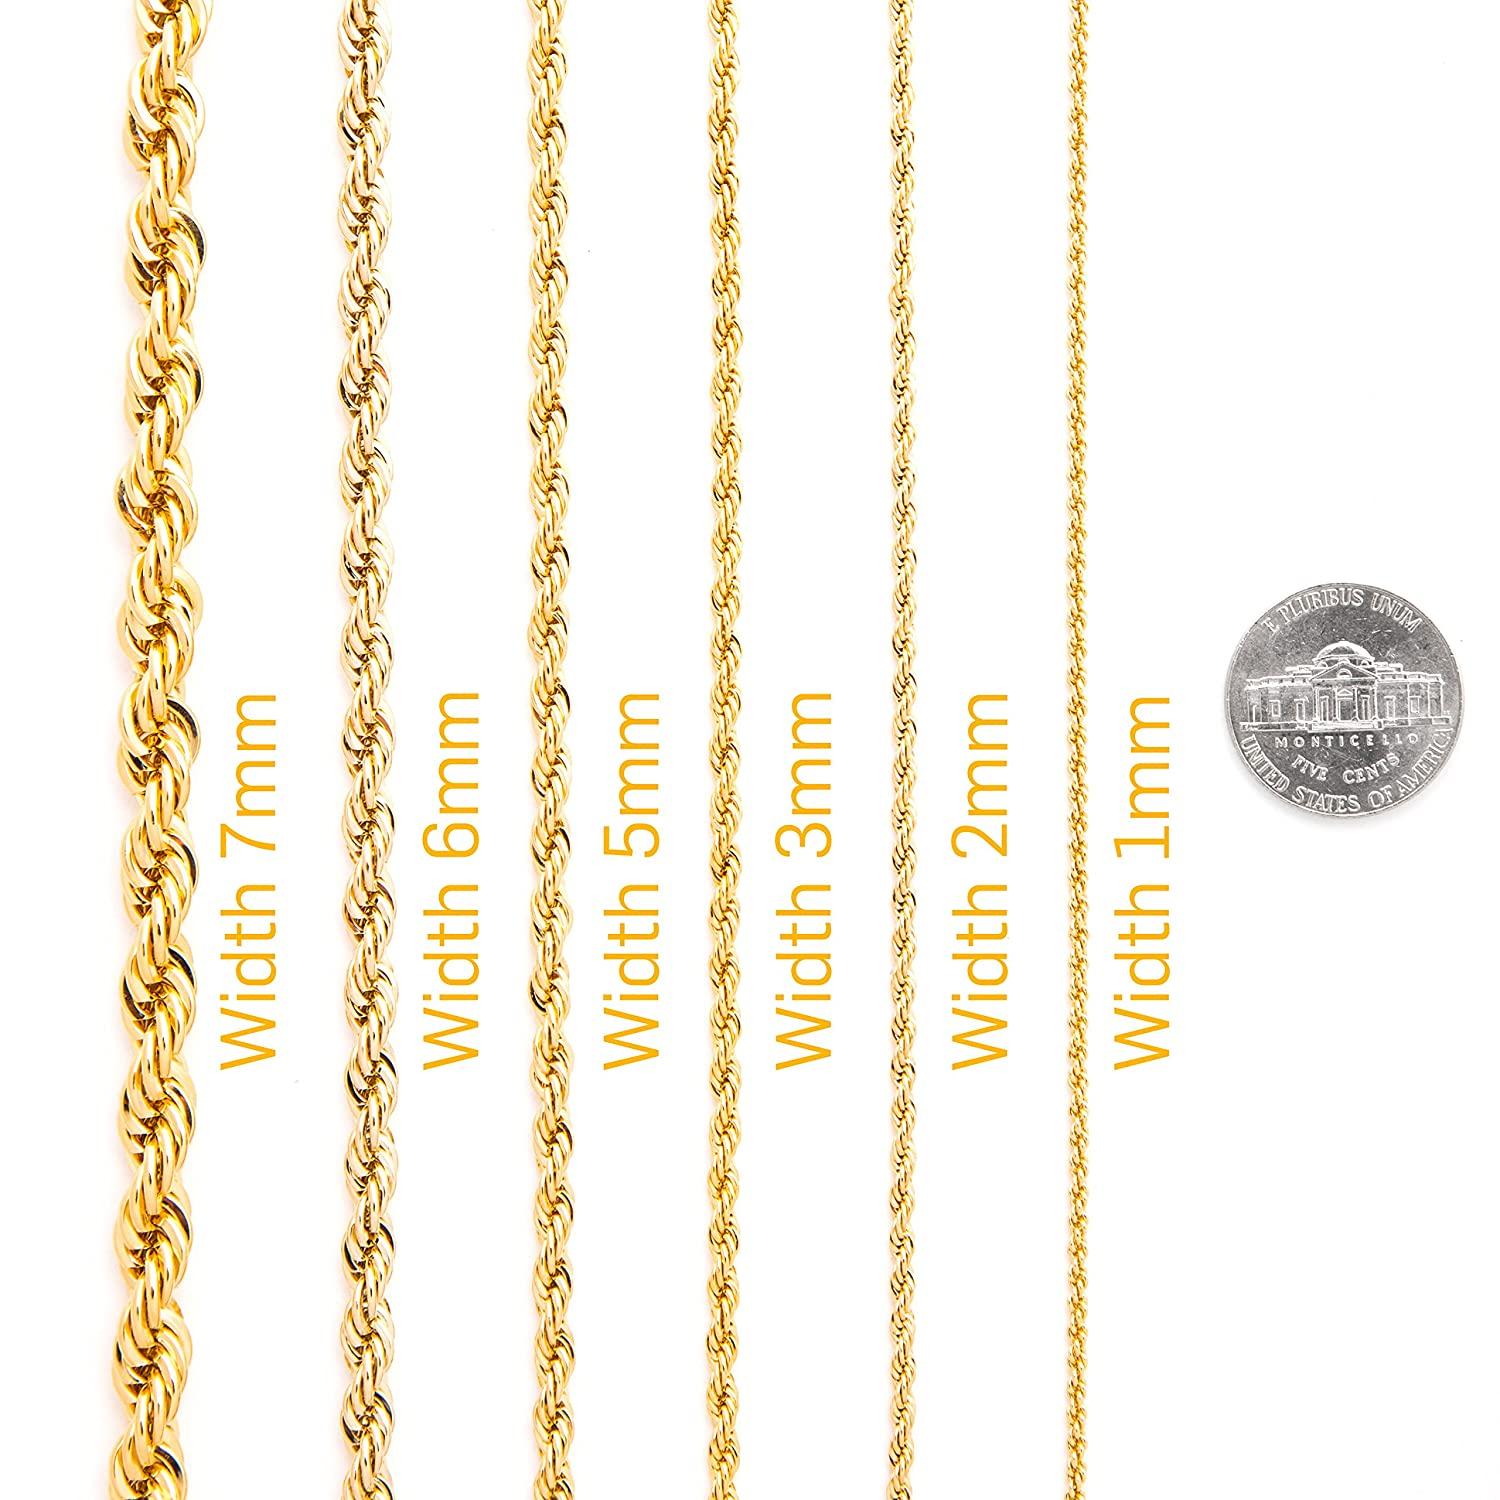 to chains ladies com view welcome collections gold chennaijeweller